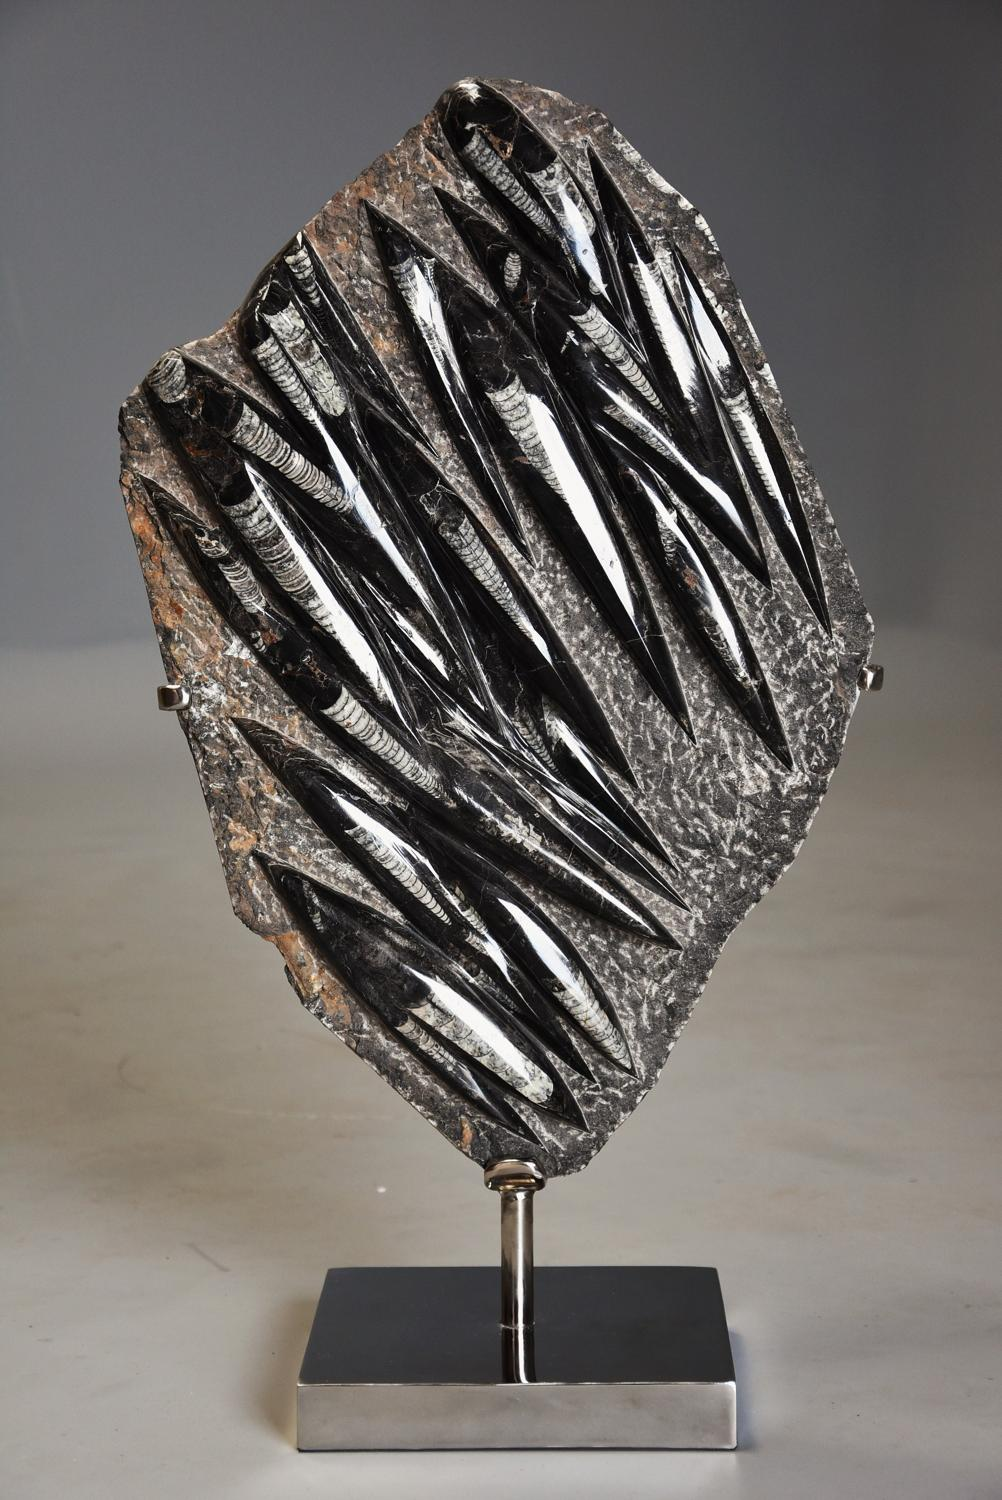 Polished Orthoceras fossil mounted on chrome base